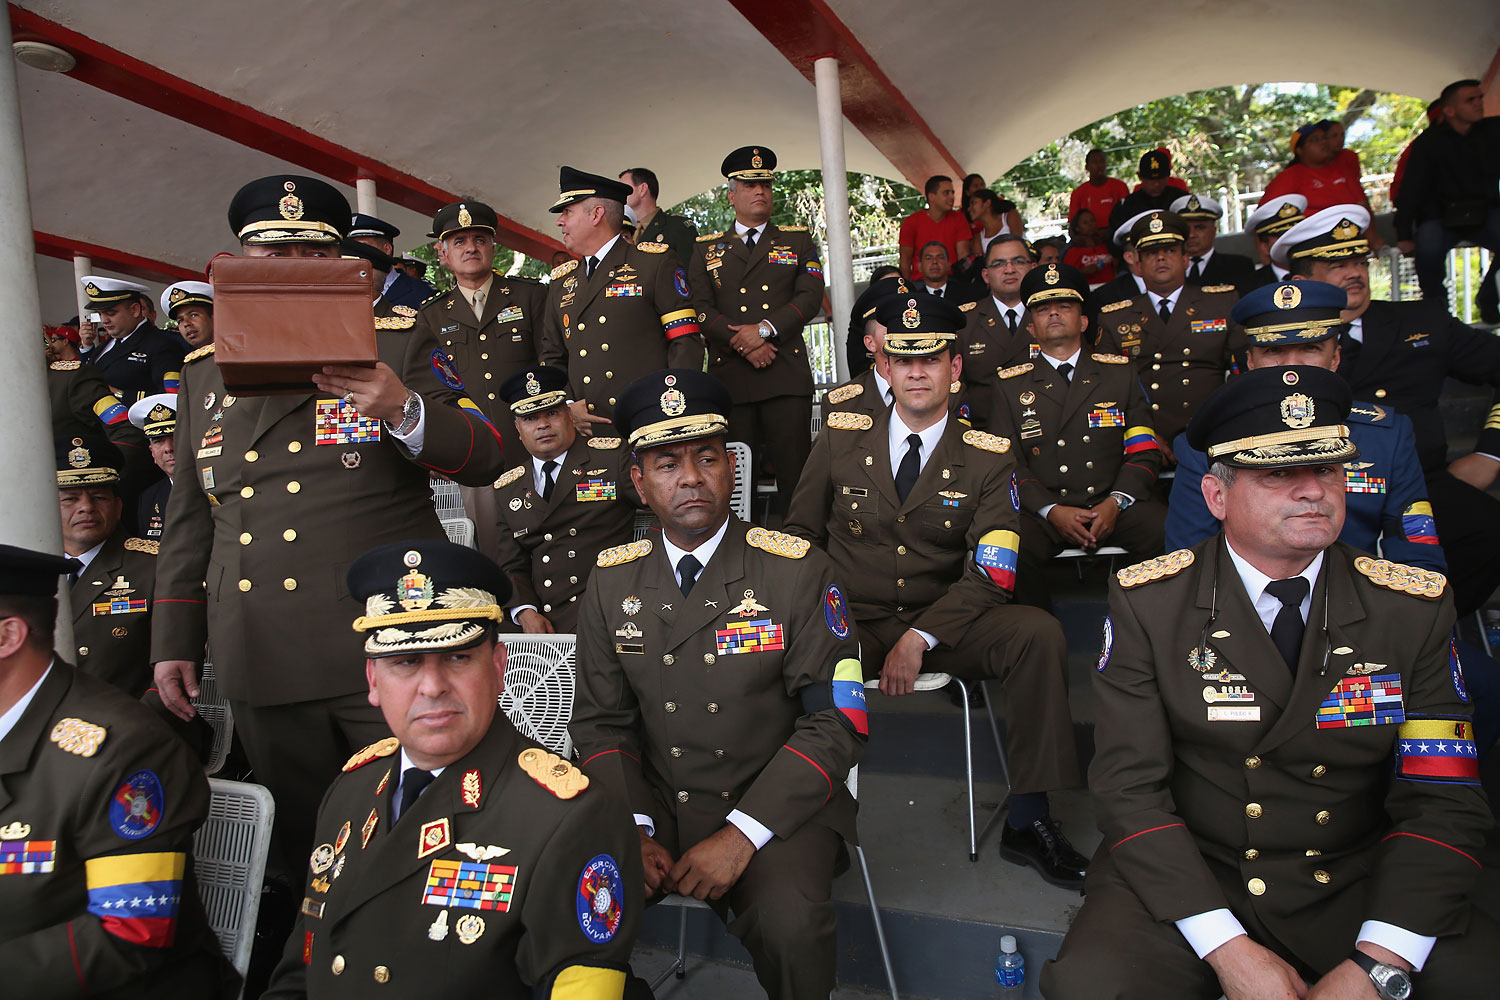 Venezuelan military officers watch an official parade marking the first anniversary of Hugo Chavez death on March 5, 2014 in Caracas.